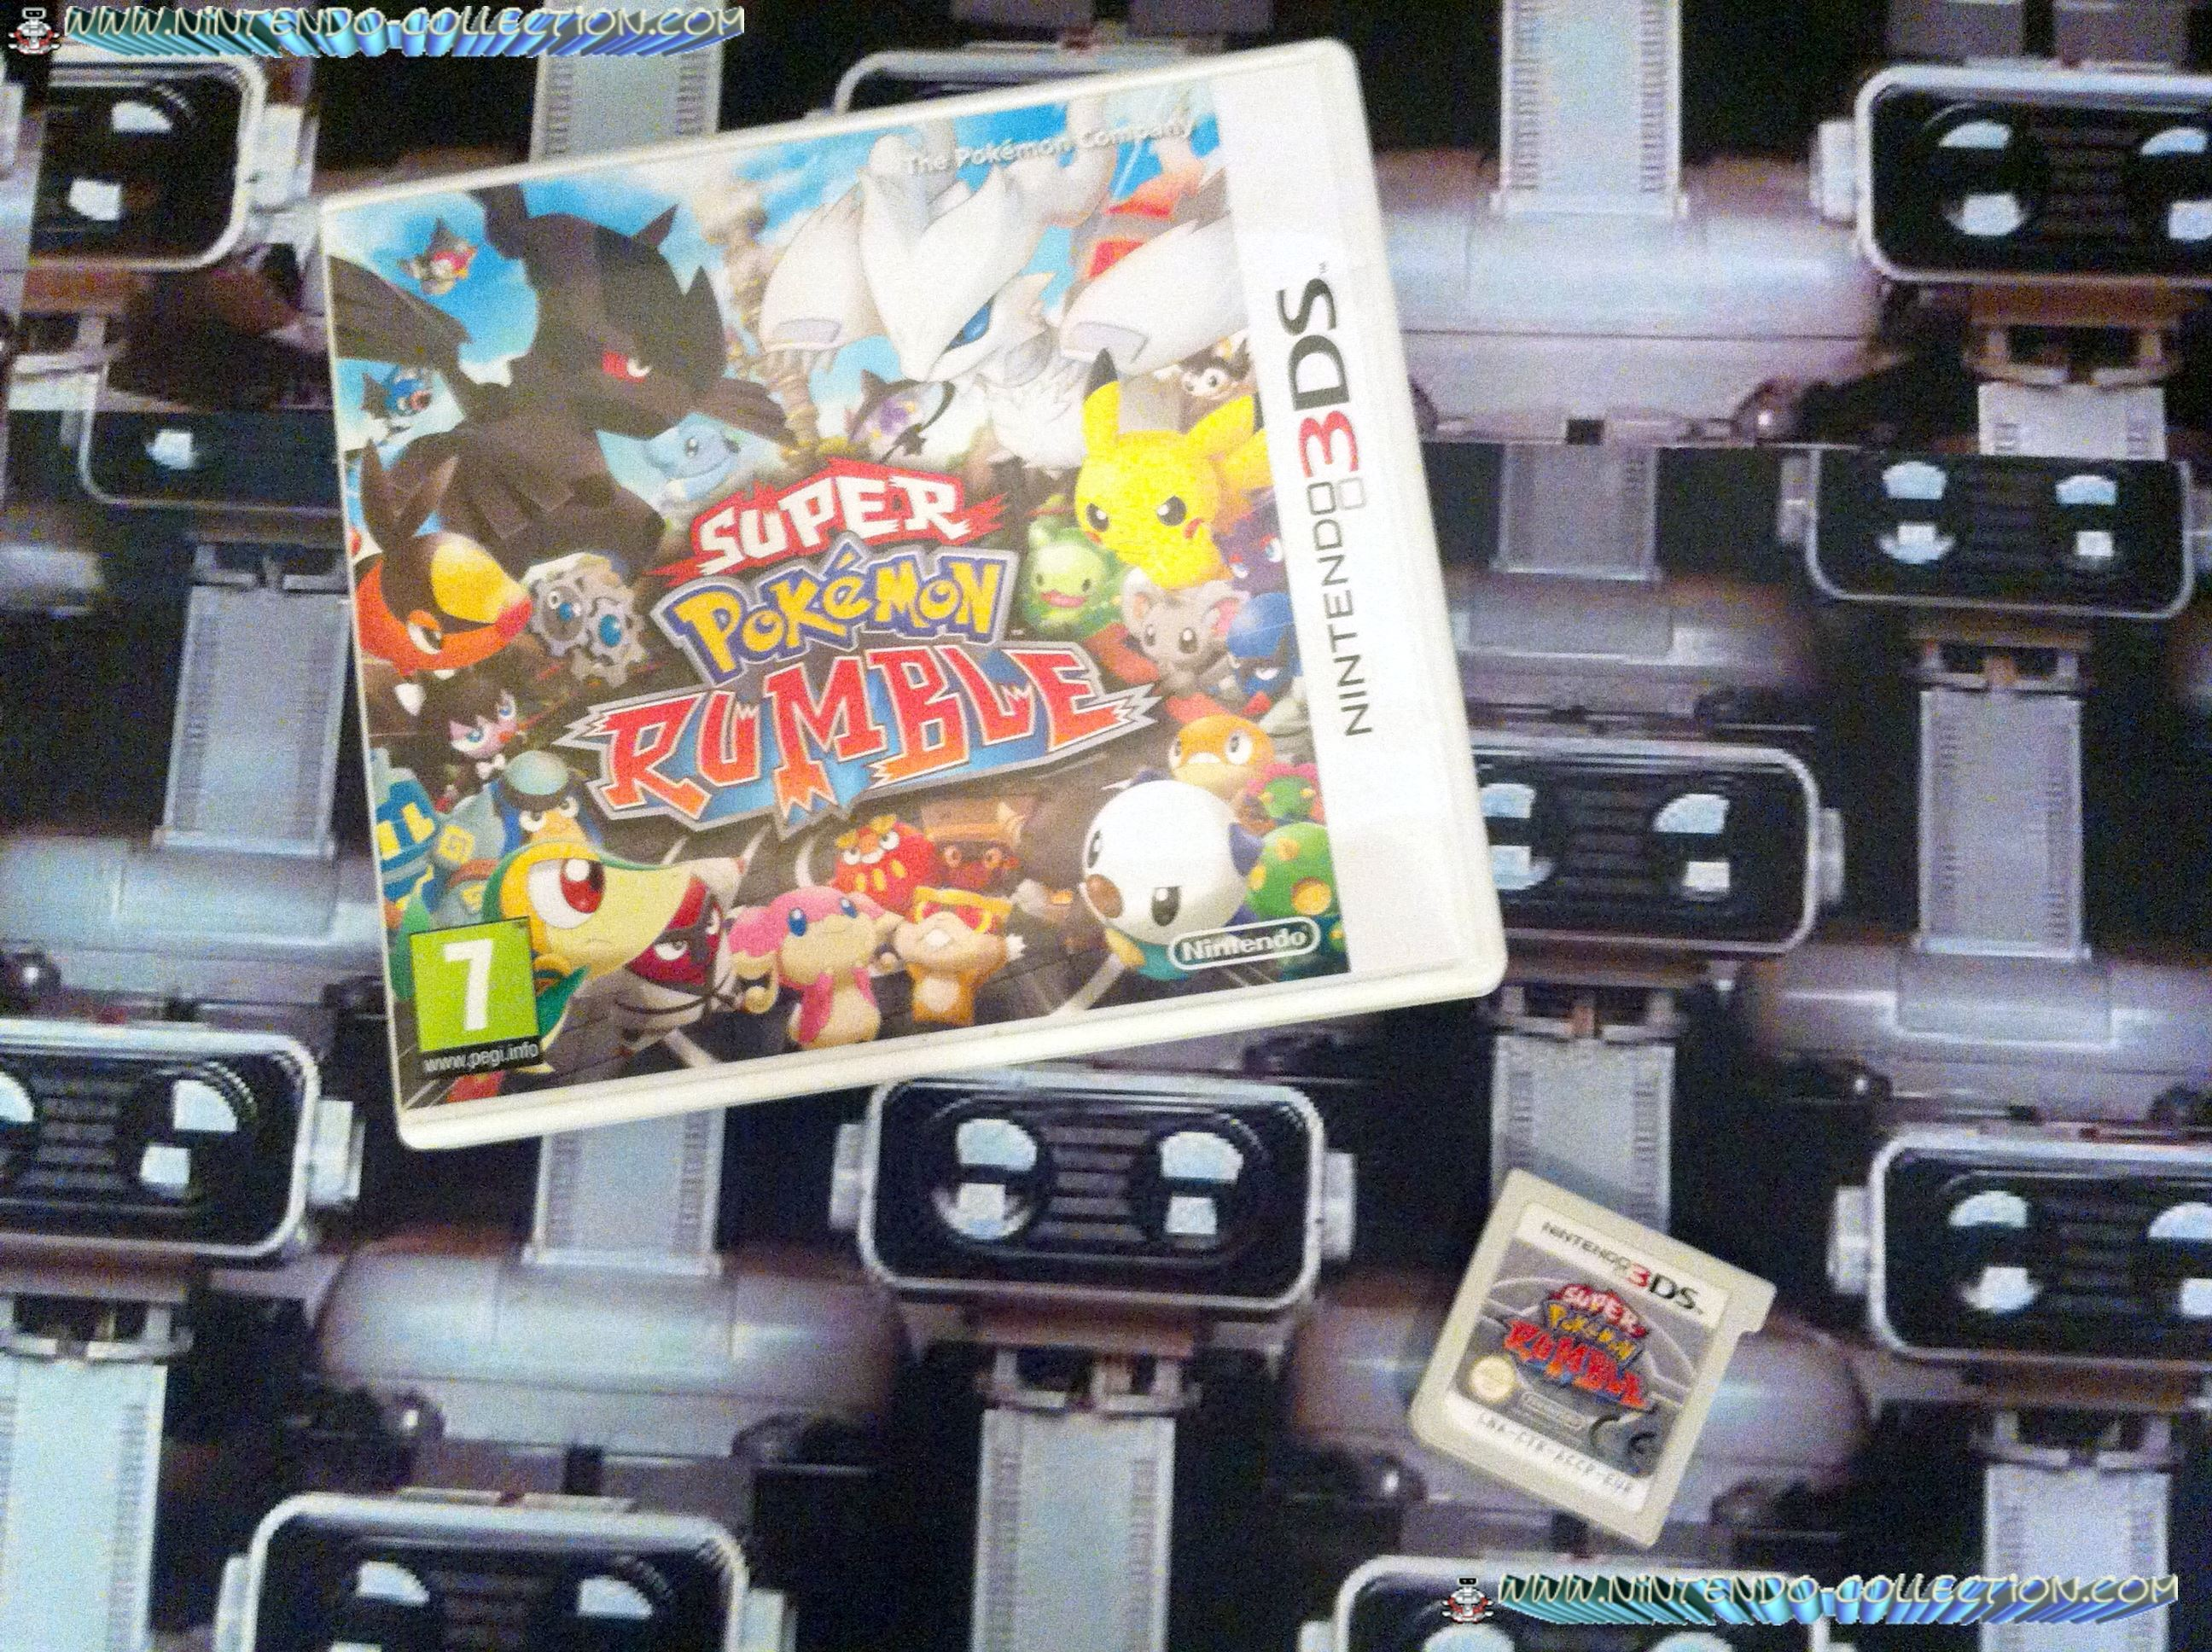 www.nintendo-collection.com - Super Pokemon Rumble - Nintendo 3DS